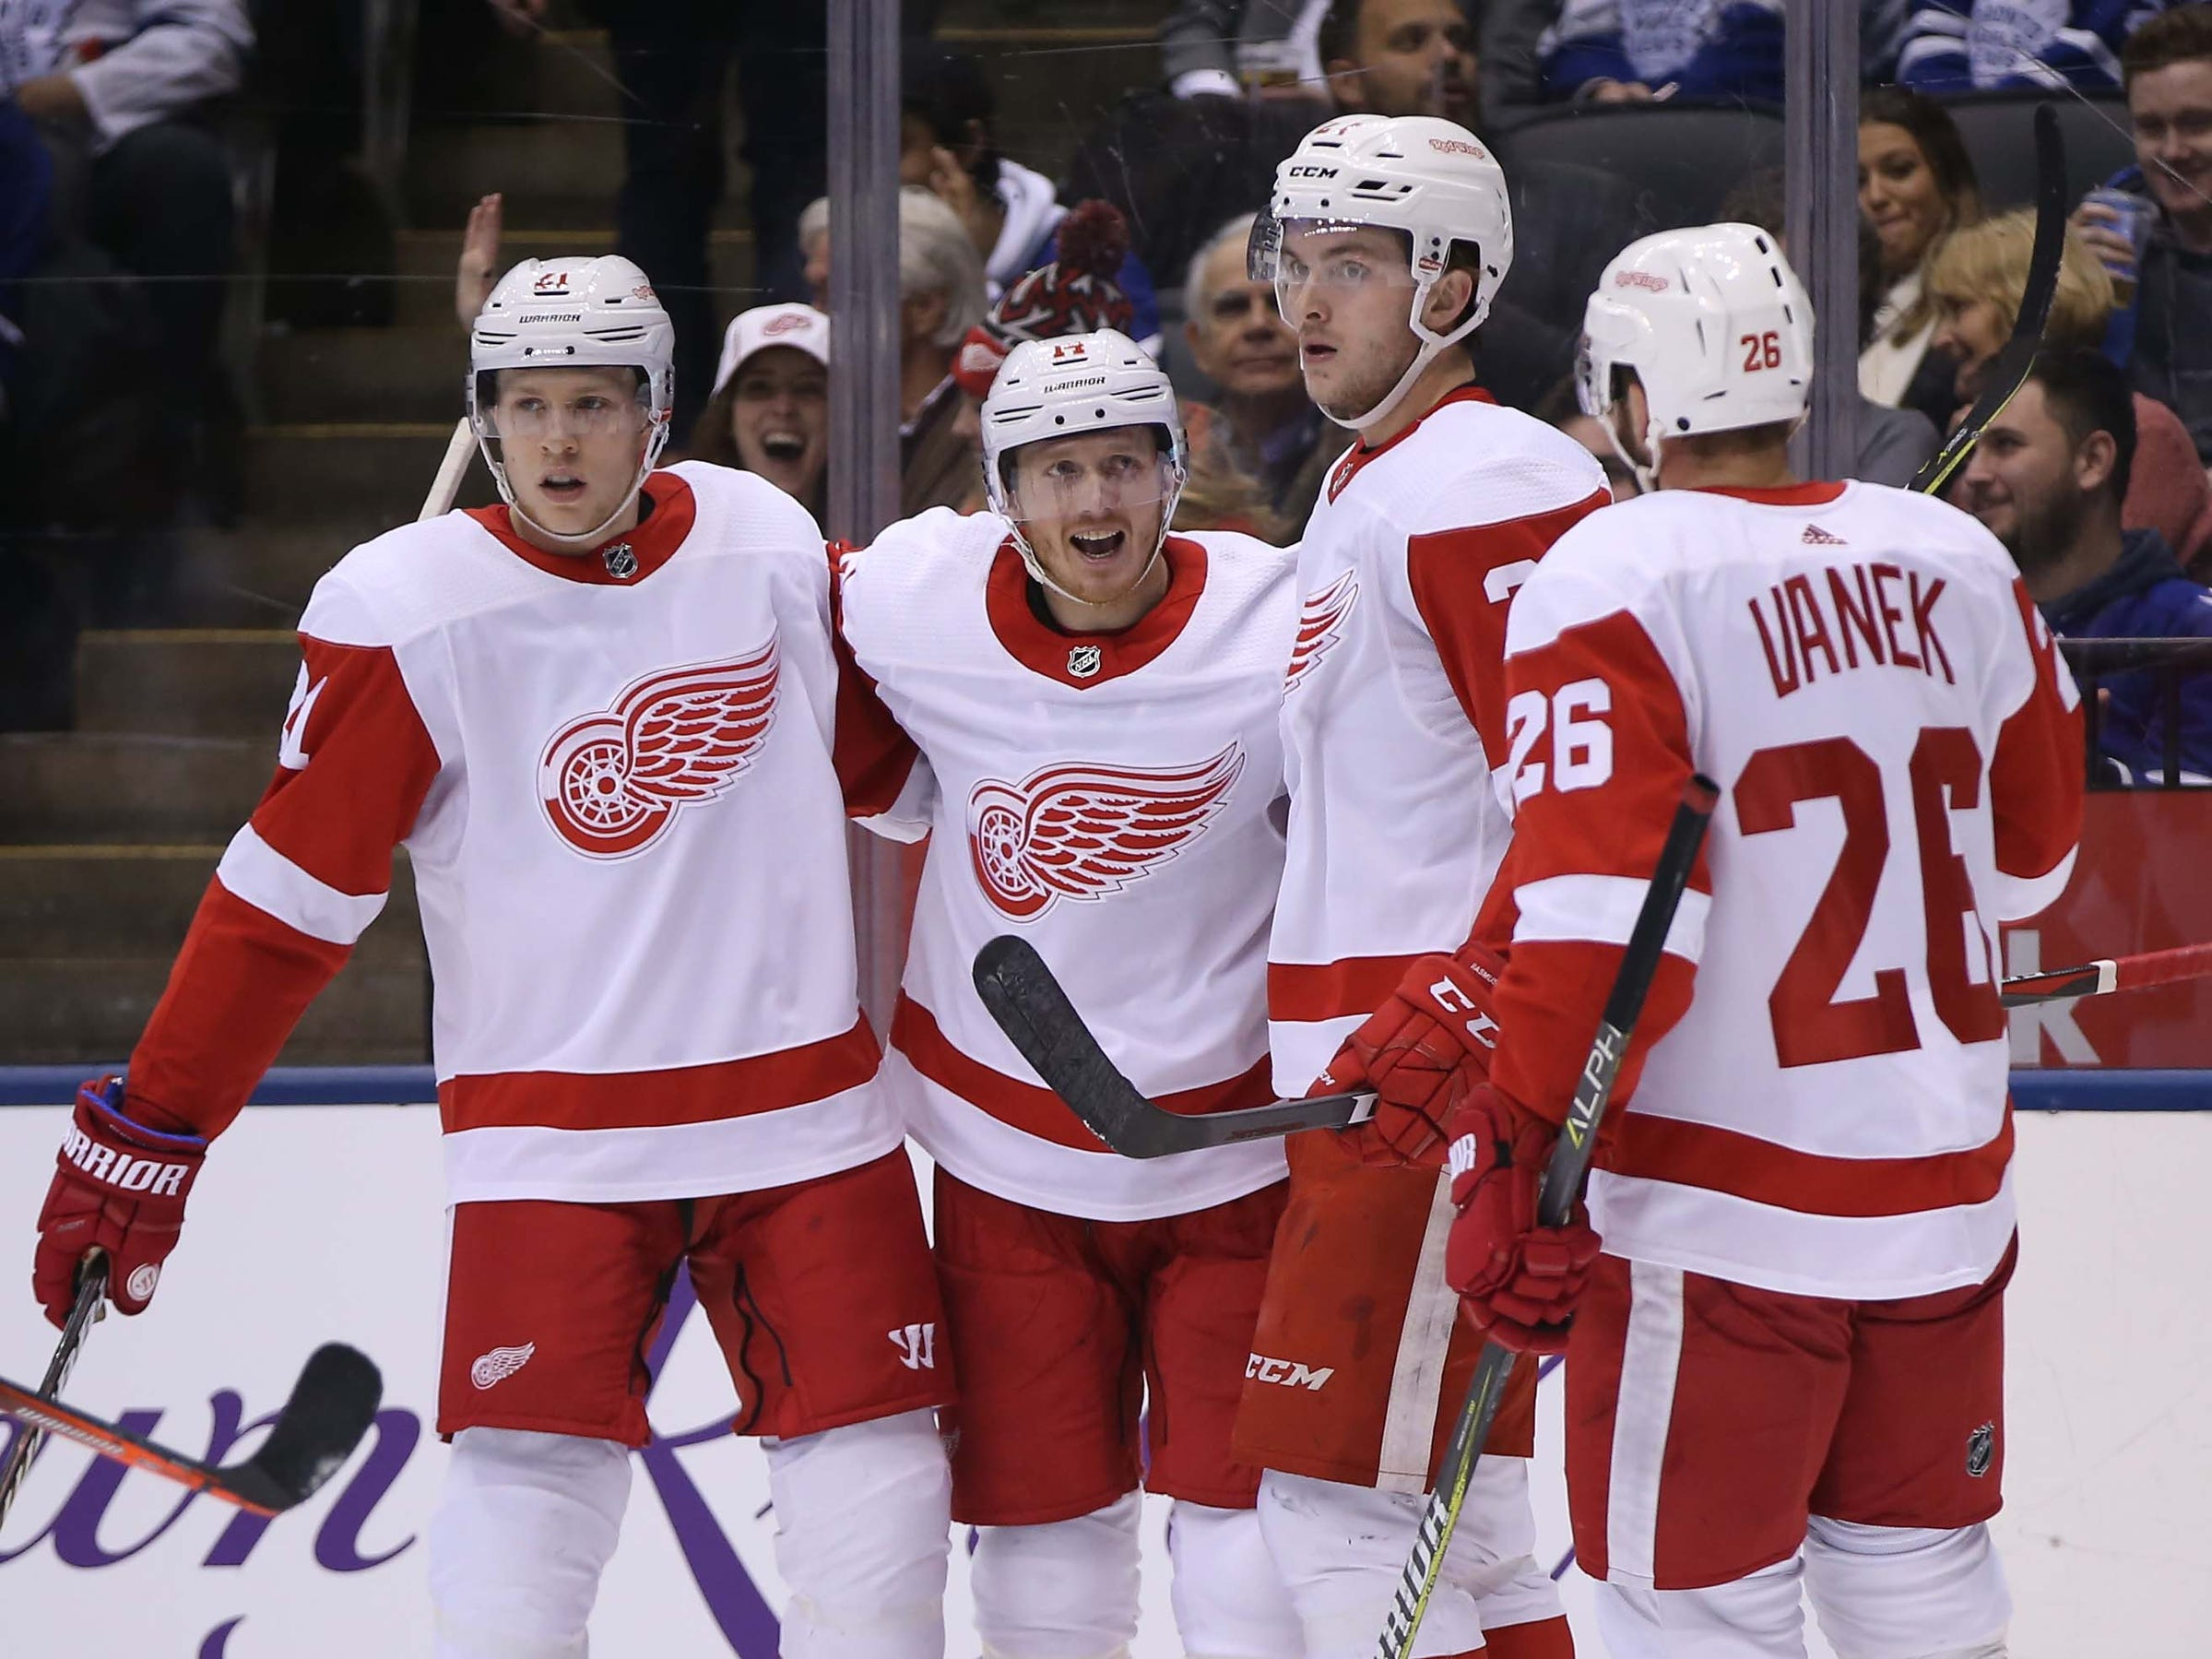 Detroit Red Wings forward Gustav Nyquist (center) celebrates his goal against the Toronto Maple Leafs during the first period at Scotiabank Arena, Dec. 6, 2018 in Toronto, Ontario, Canada.